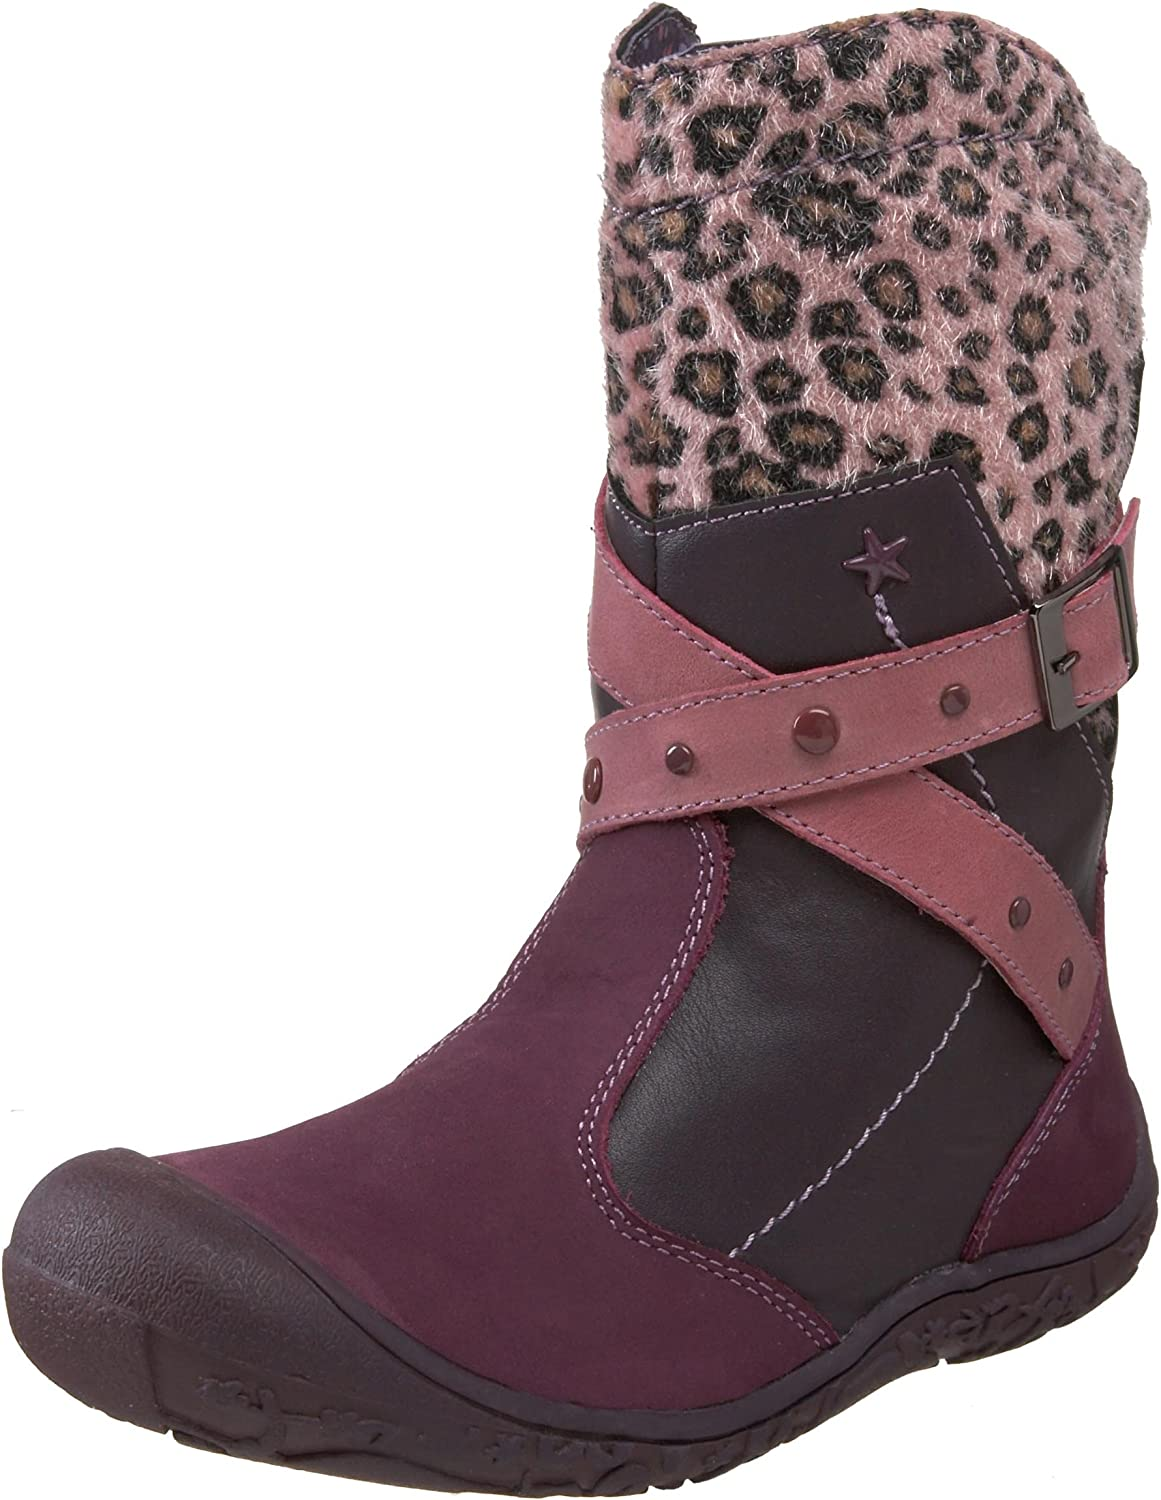 Beauty products 55% OFF Beeko Paige Toddler Boot